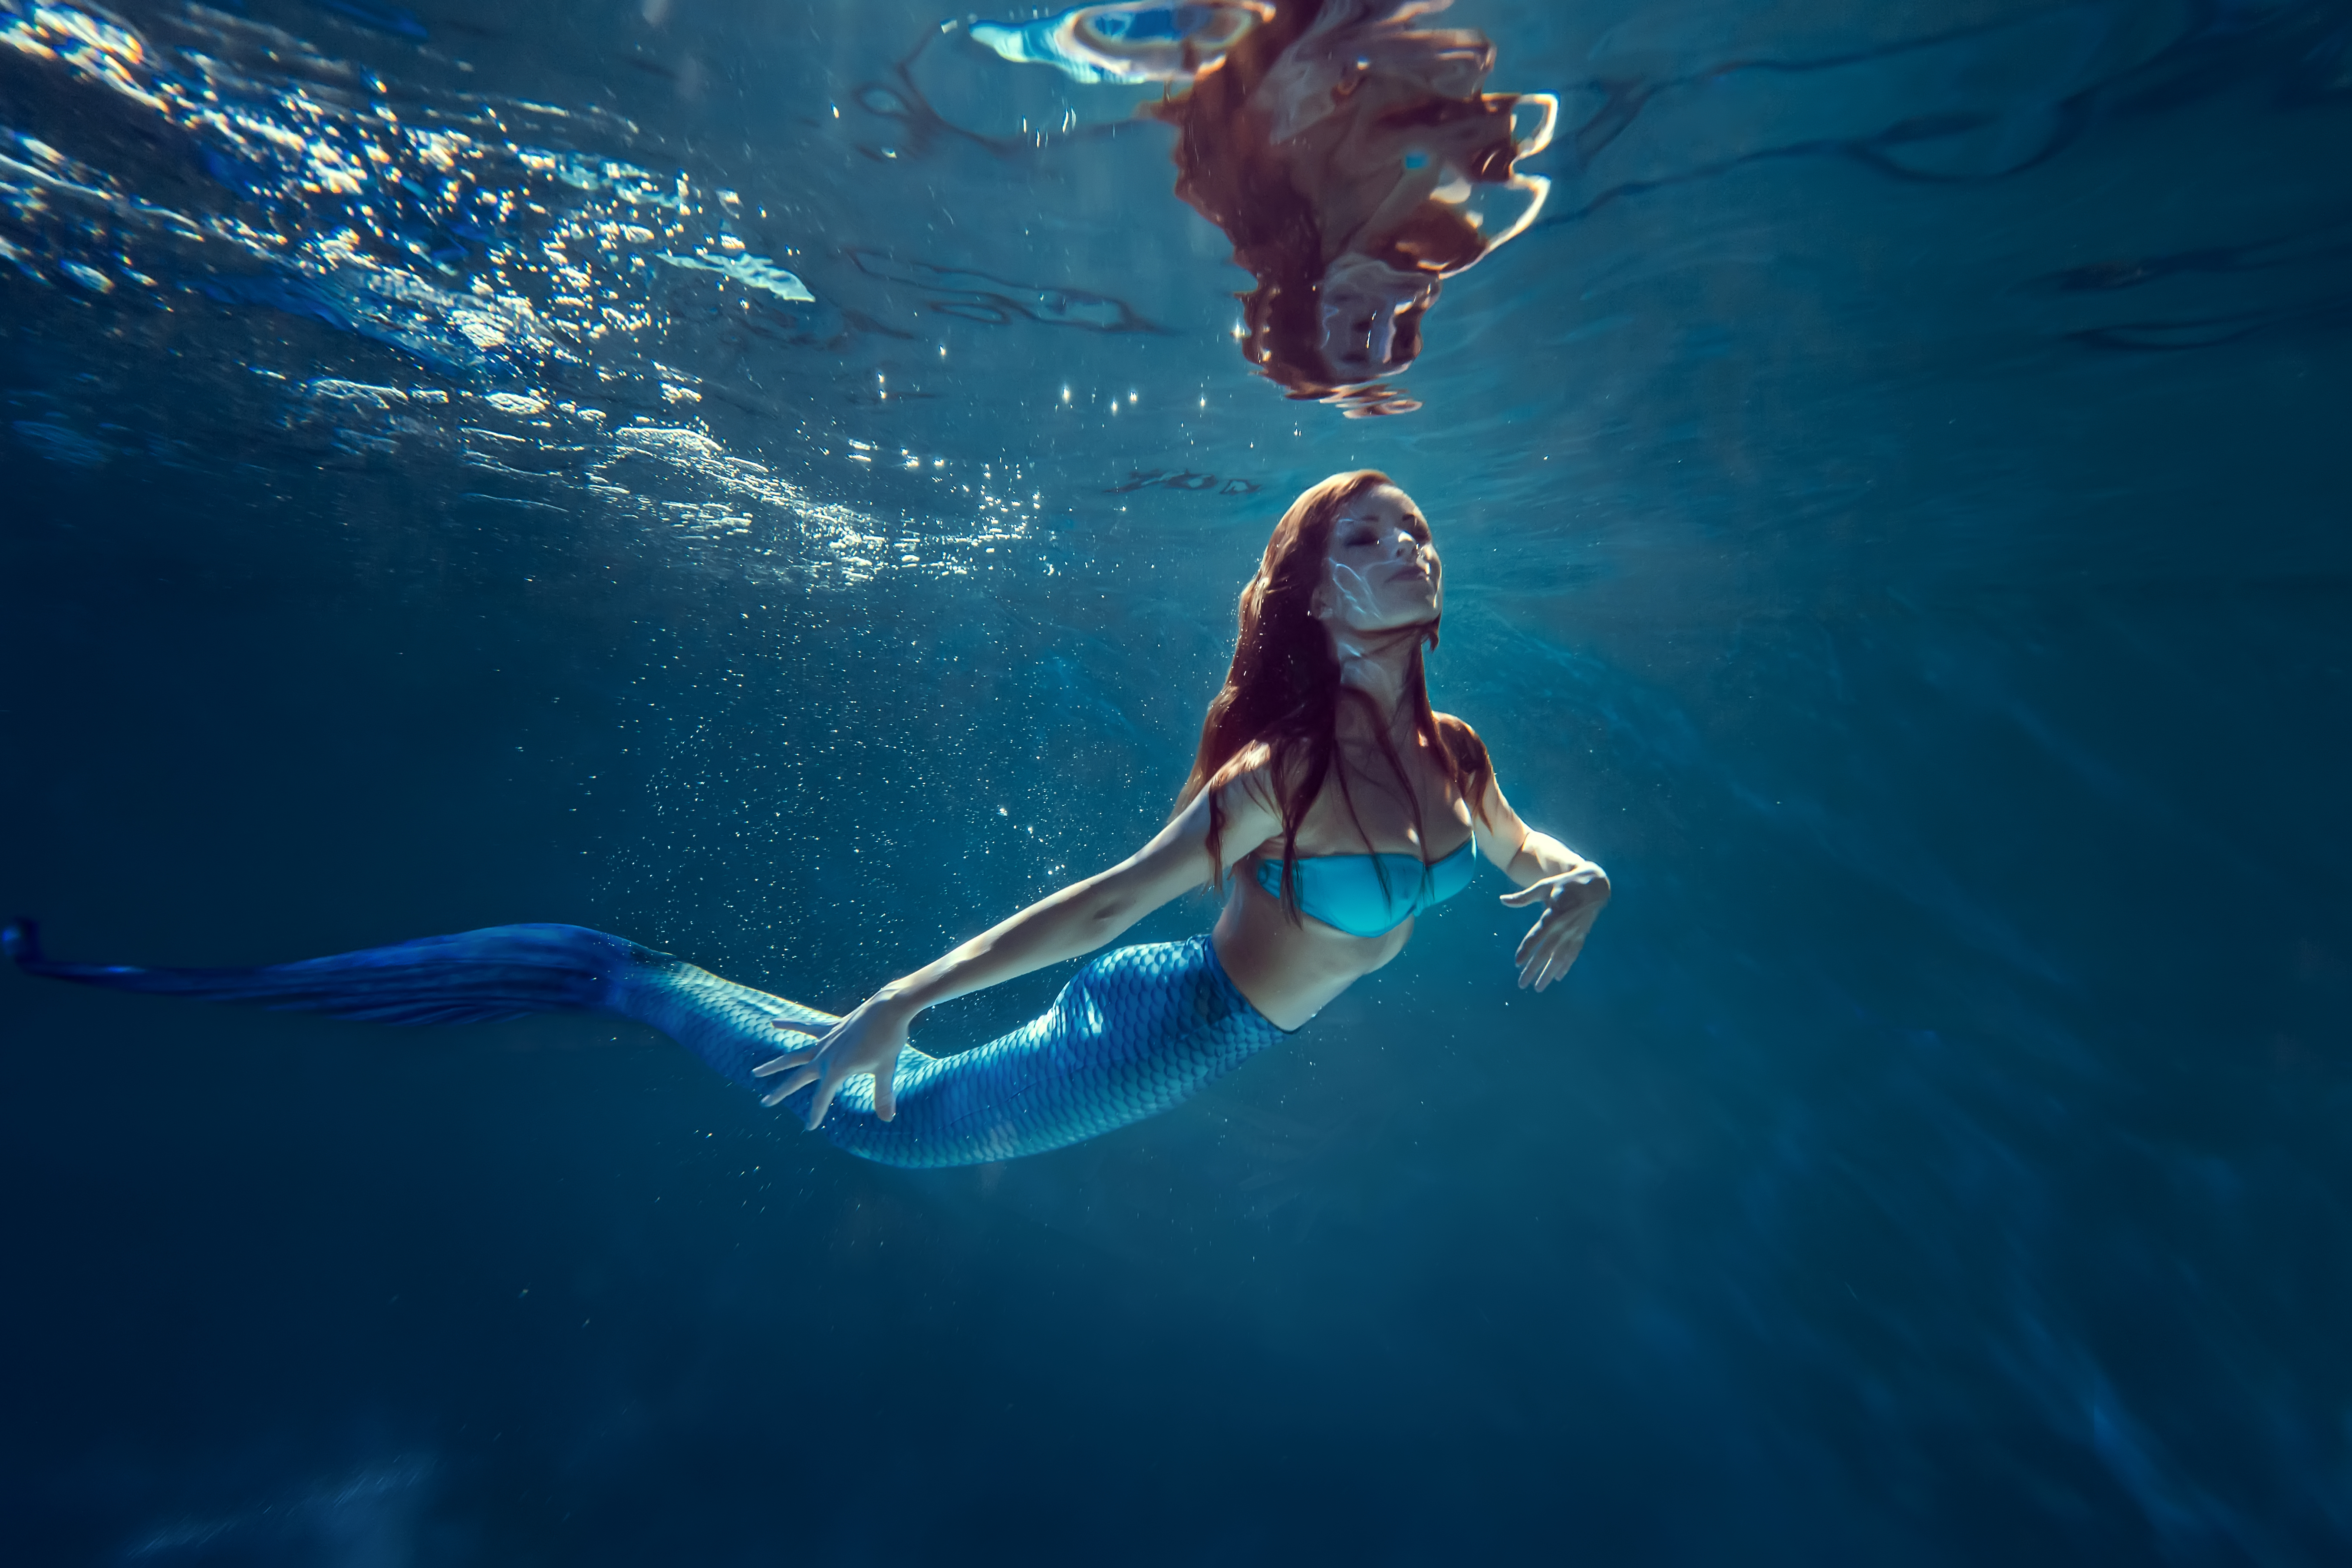 Real Life Mermaid Melissa Photo Gallery: Professional A real photo of a mermaid